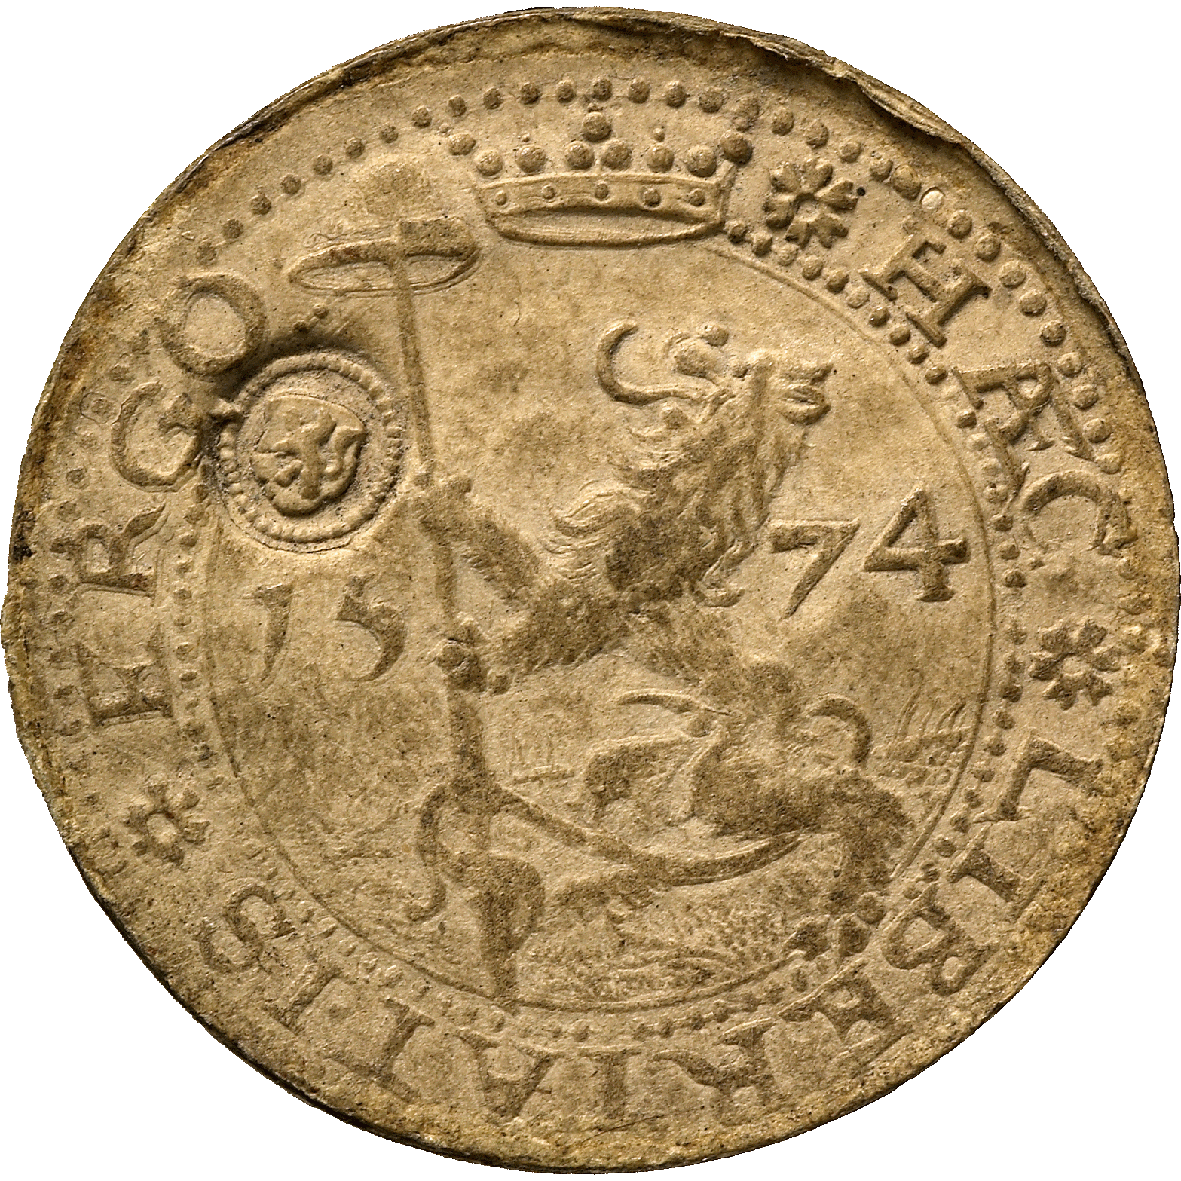 Netherlands, Leiden Besieged by the Spaniards, Guilder 1574 (obverse)